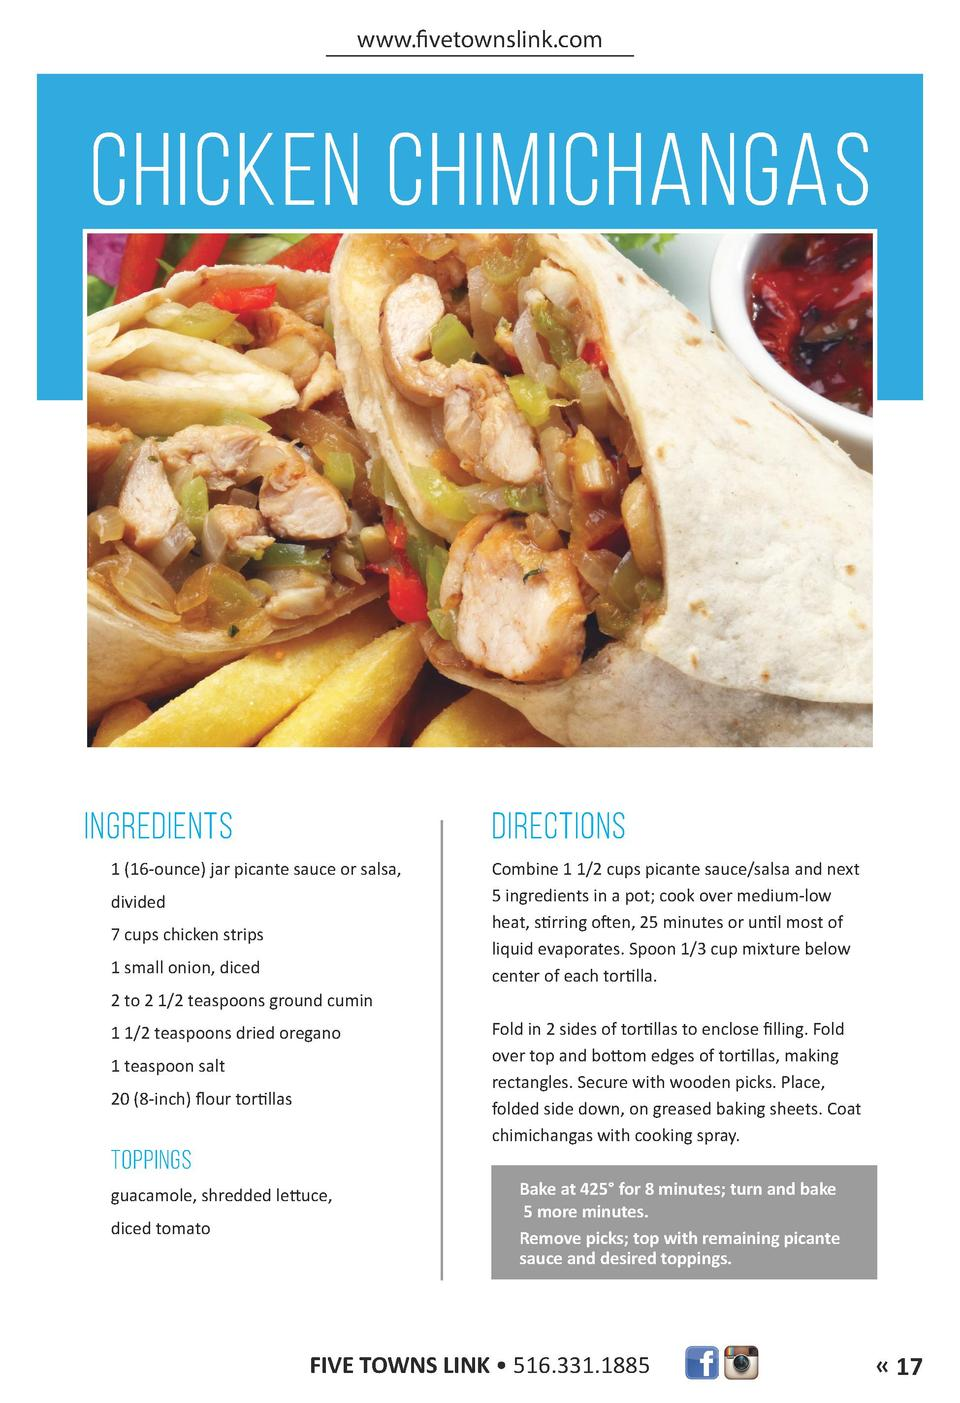 www.fivetownslink.com  CHICKEN CHIMICHANGAS  INGREDIENTS  DIRECTIONS  1  16-ounce  jar picante sauce or salsa, divided 7 c...